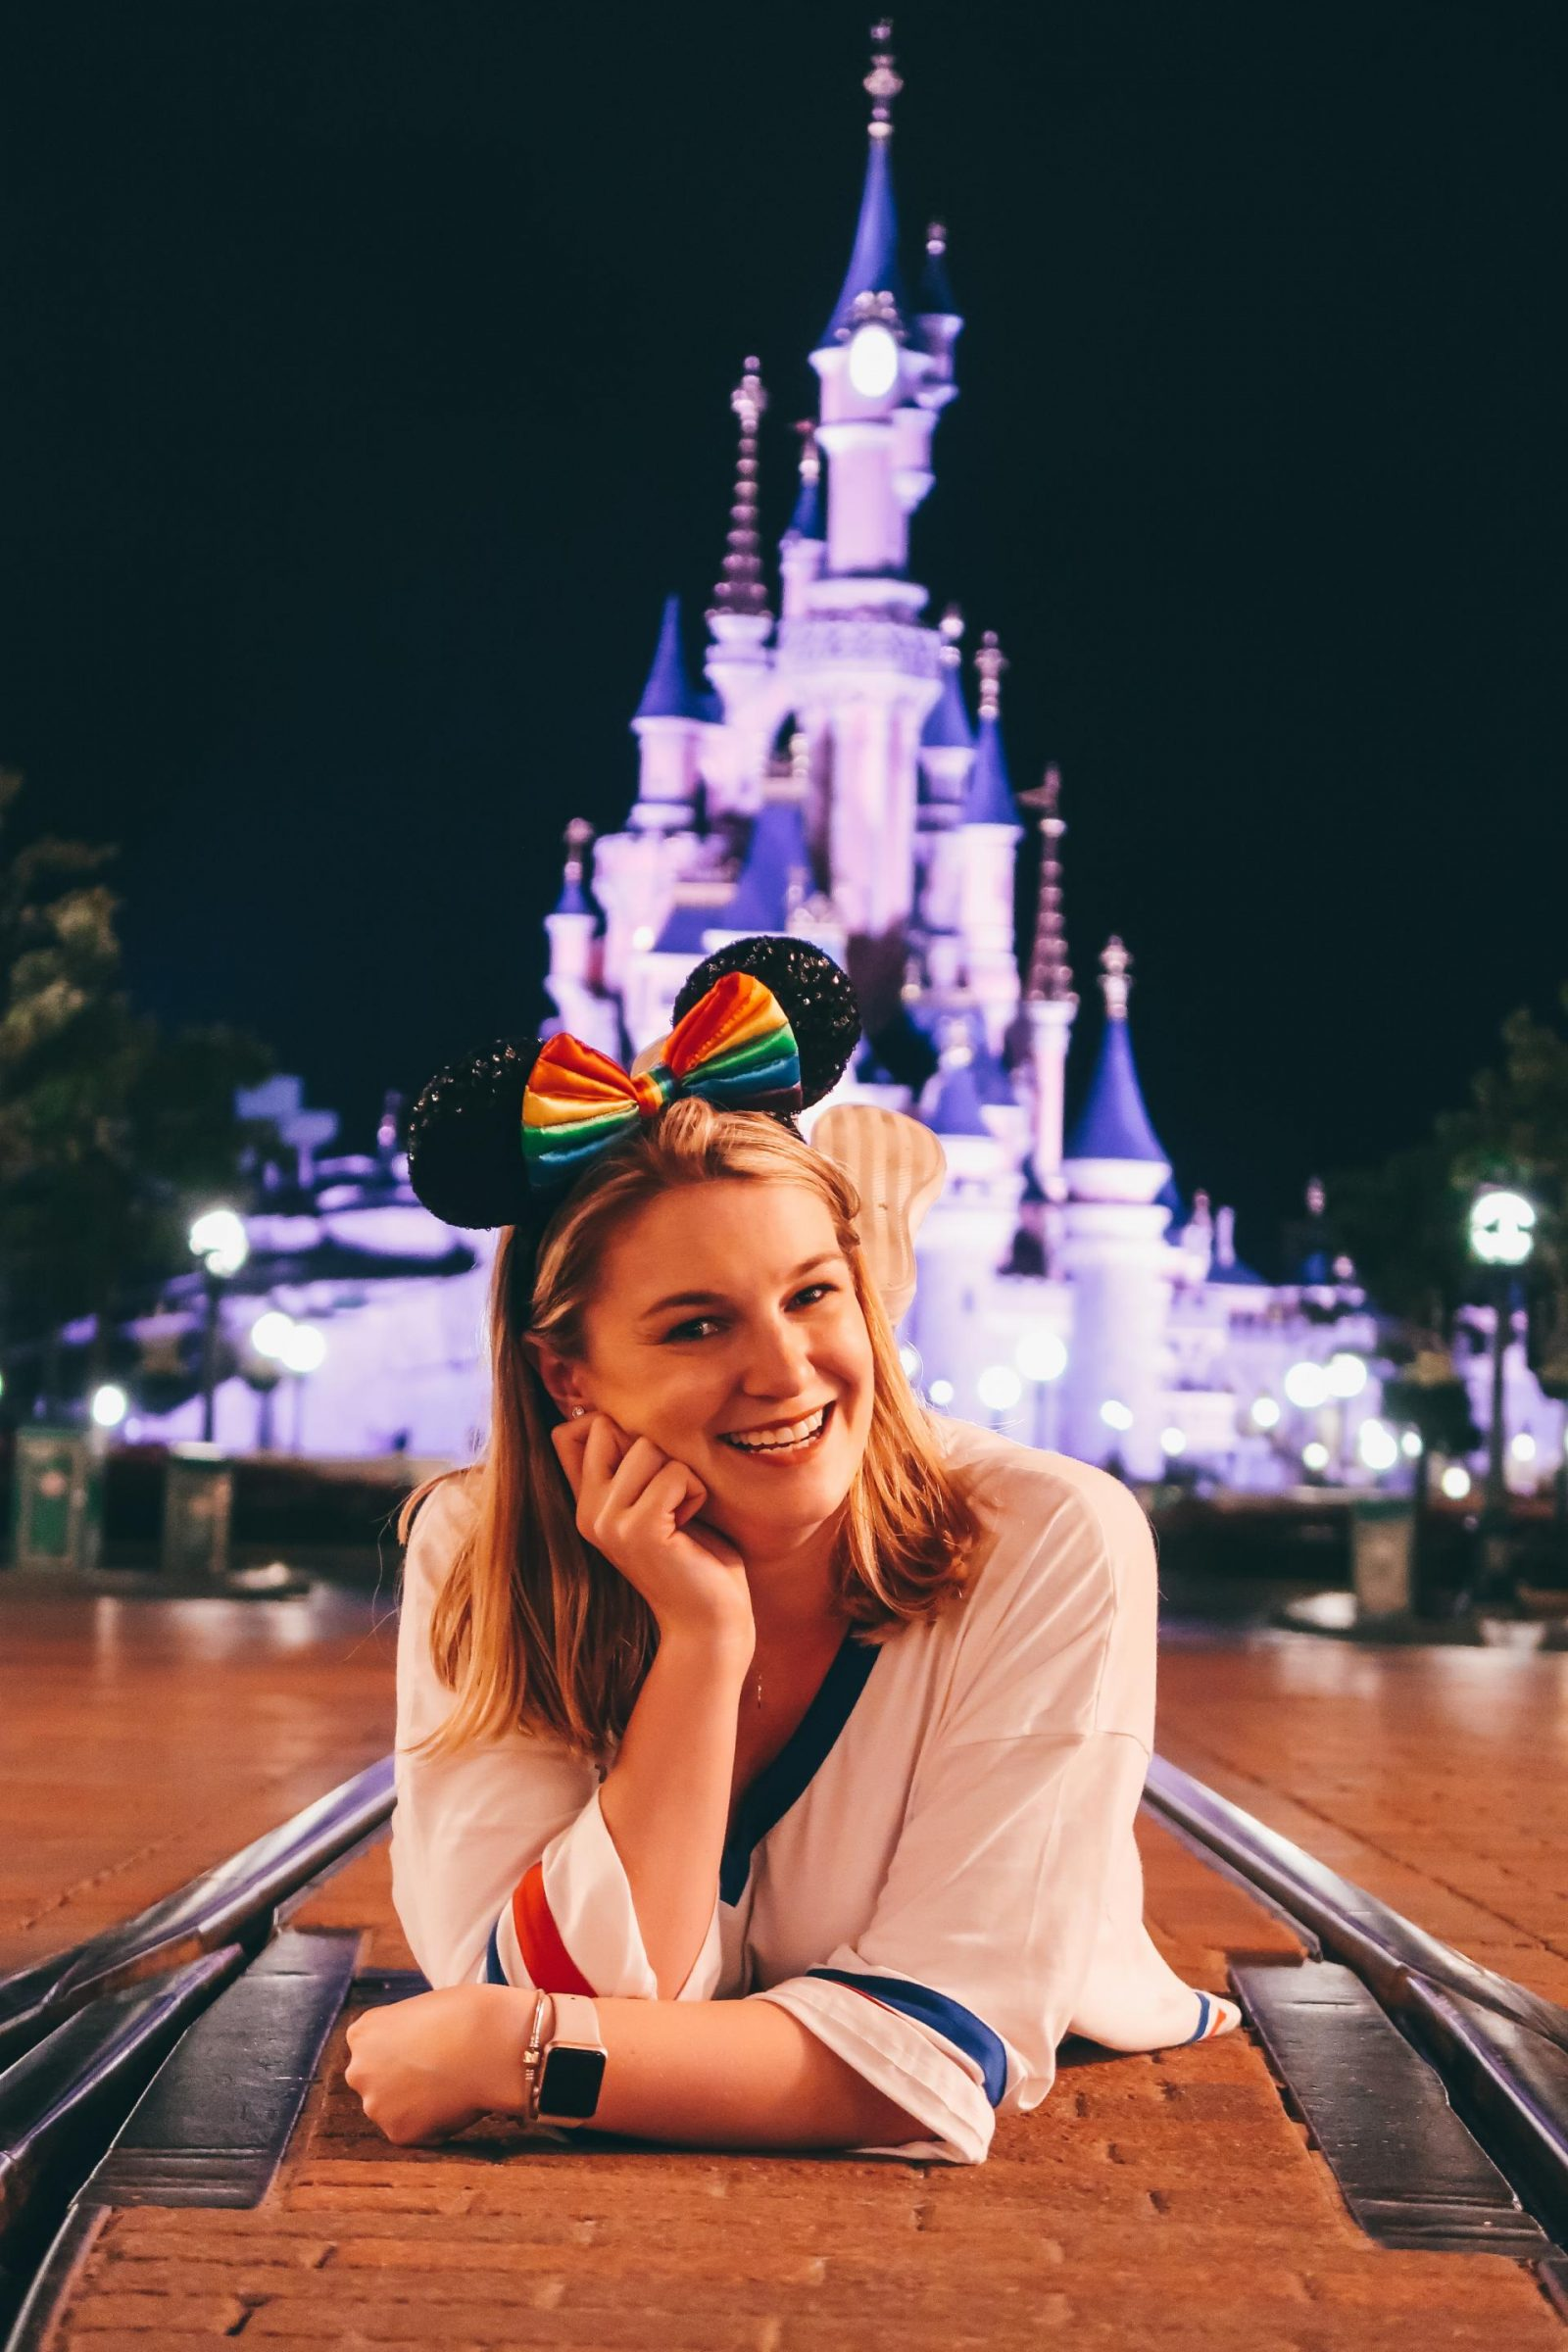 Sleeping beauty Castle at night - one of the most Instagrammable spots at Disneyland Paris